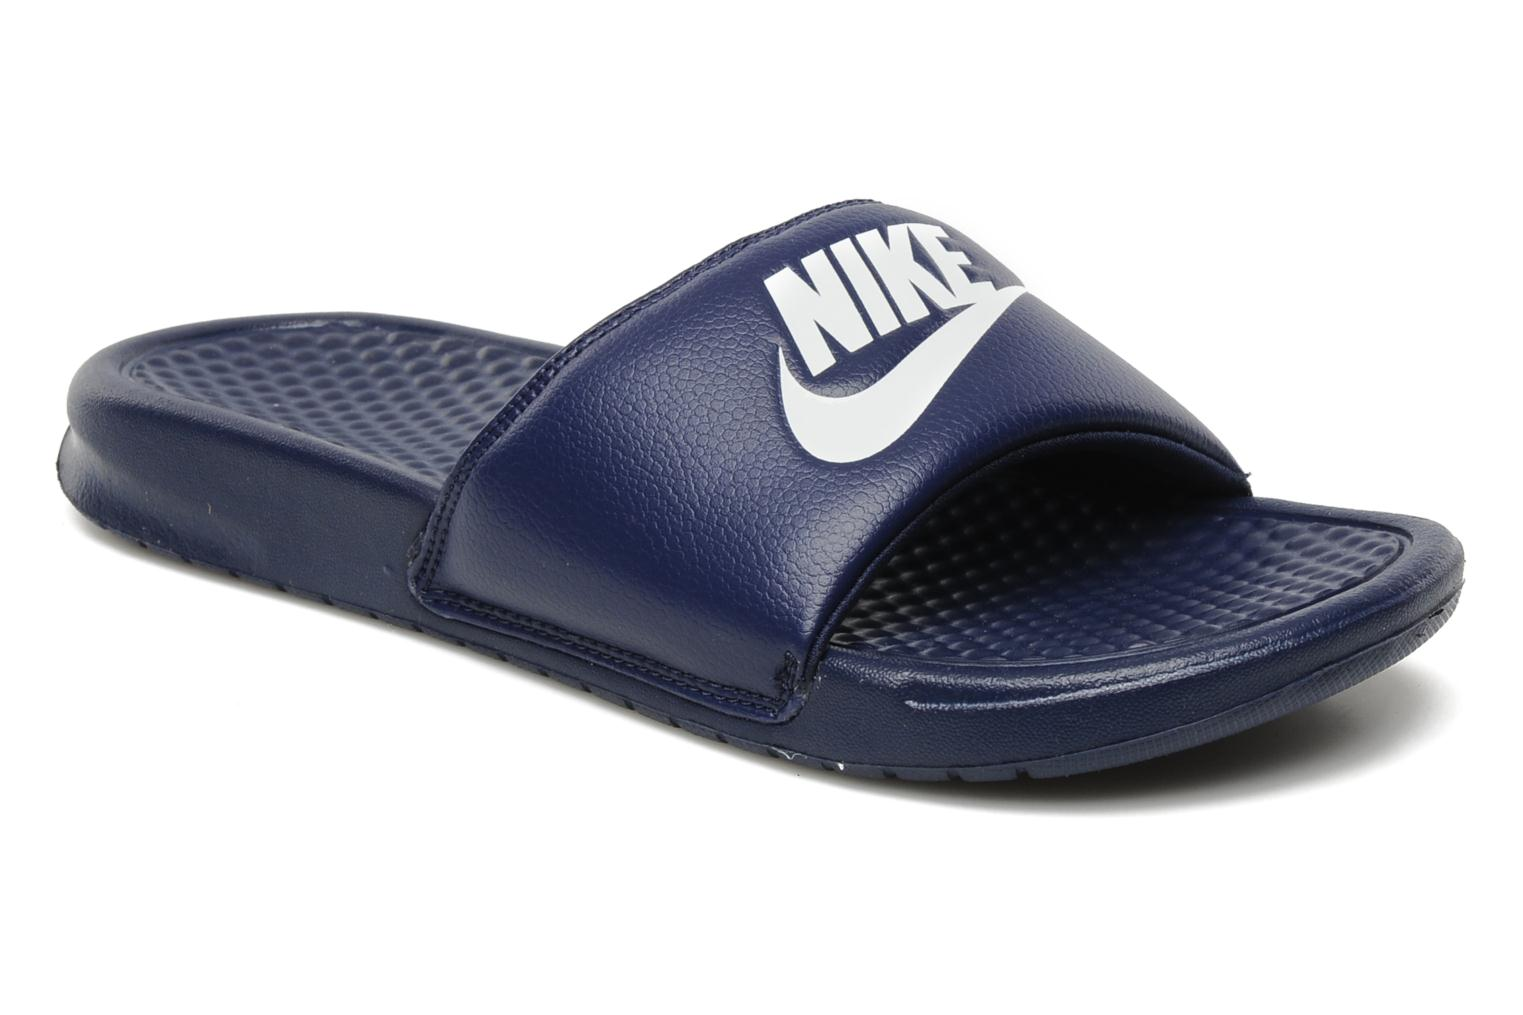 Benassi Jdi Midnight Navy/Windchill